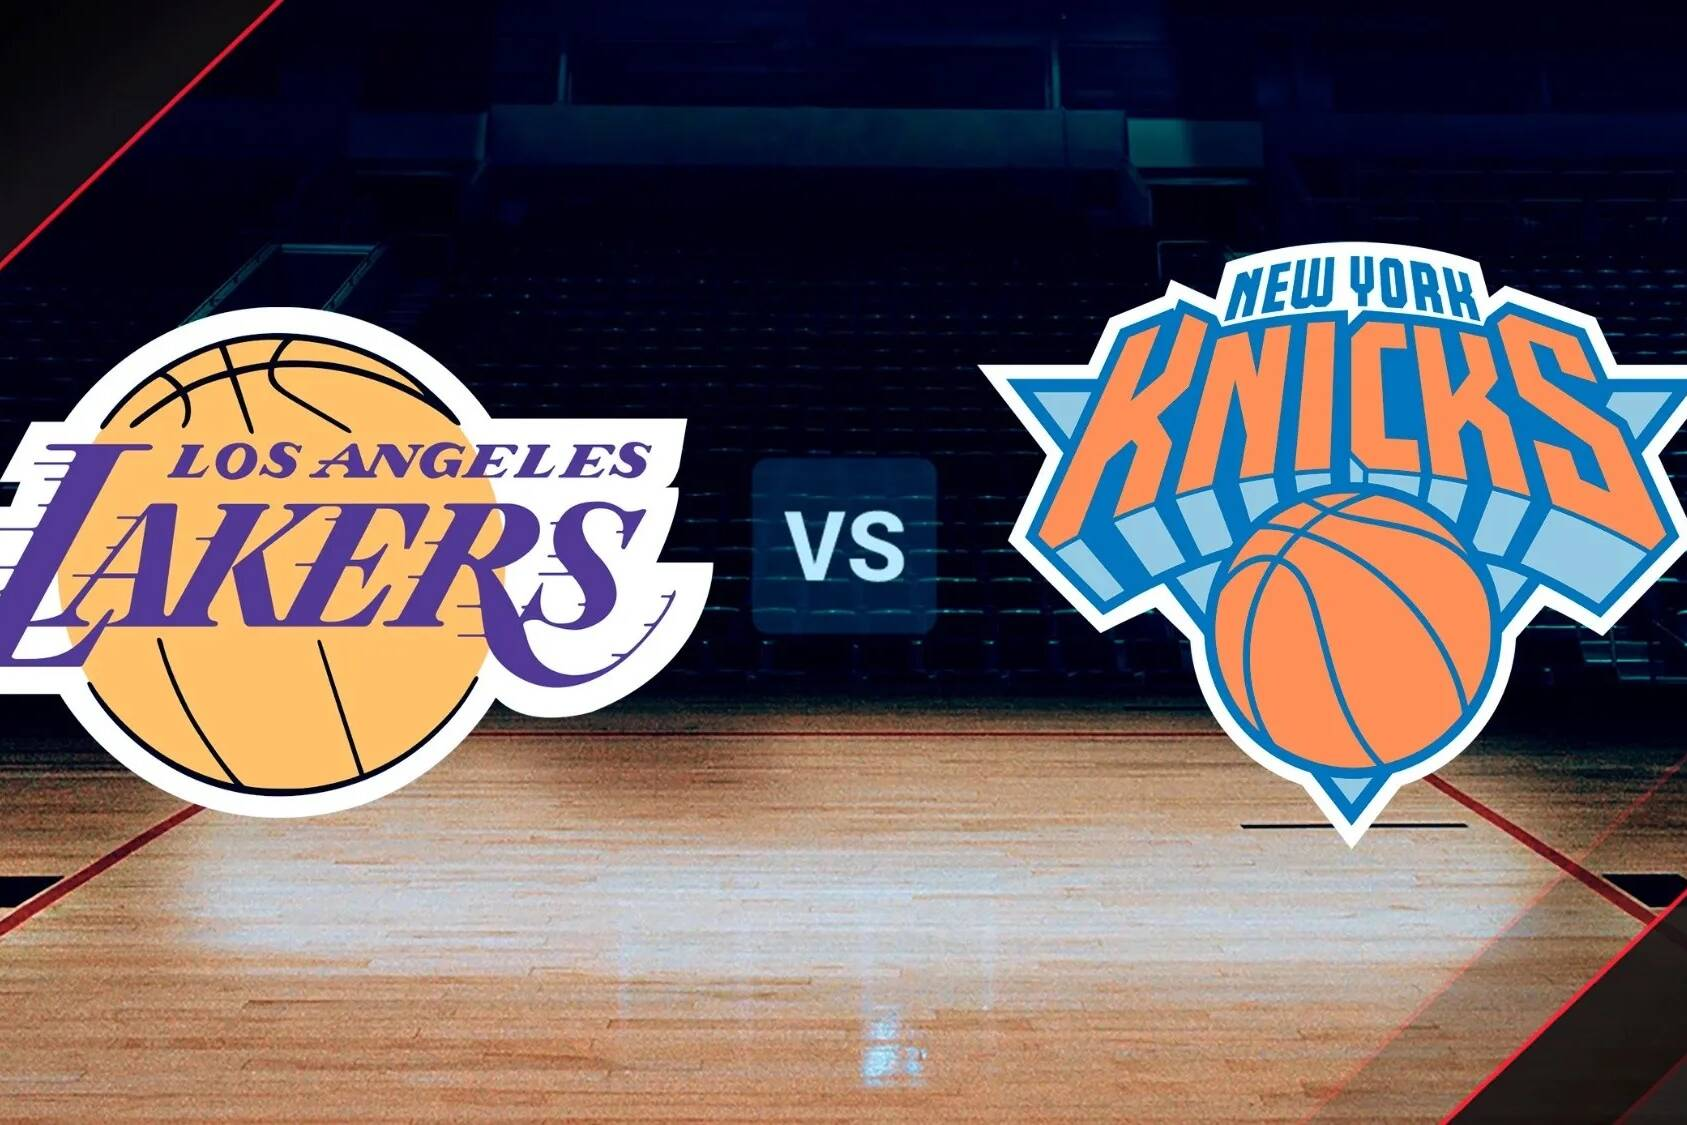 Lakers vs Knicks